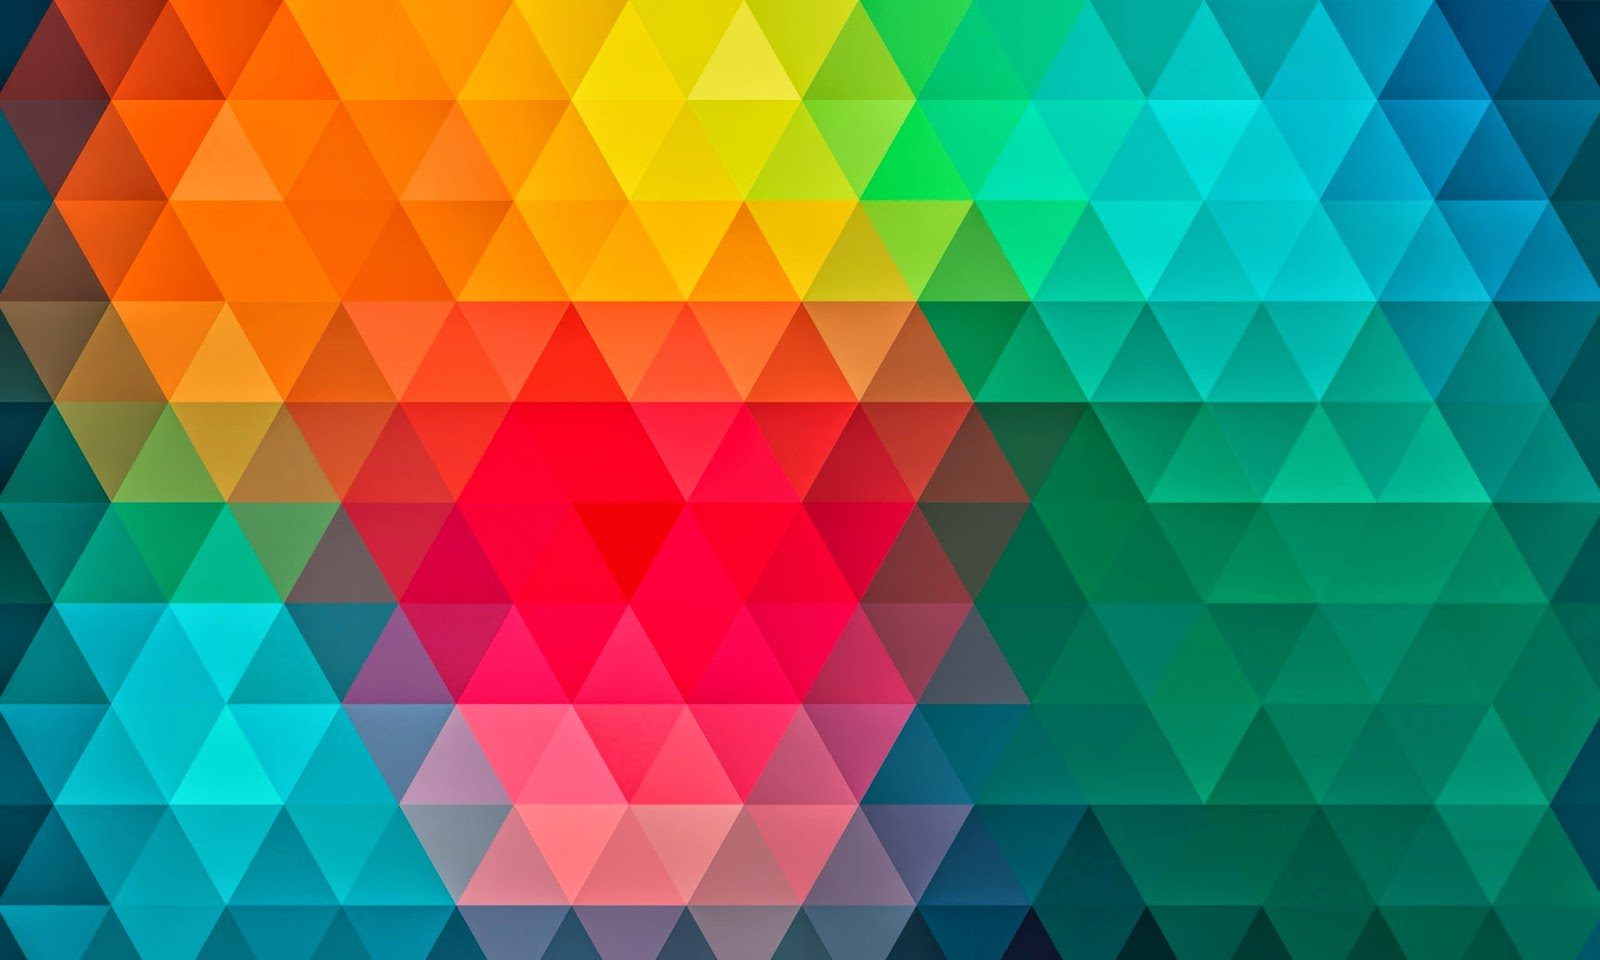 triangle abstract wallpapers hd -#main